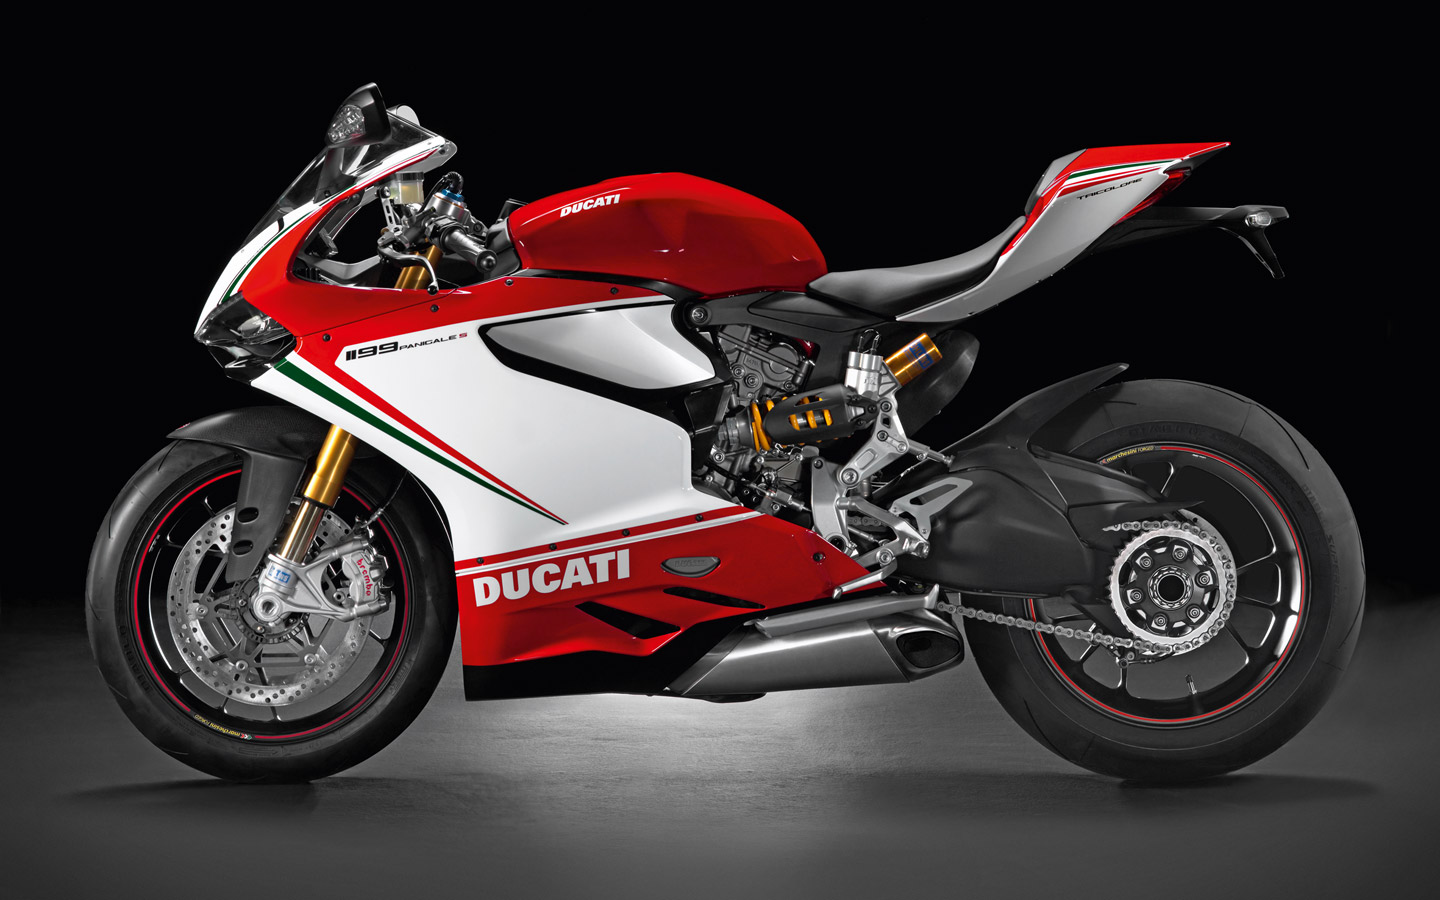 racing caf ducati 1199 panigale s tricolore 2012. Black Bedroom Furniture Sets. Home Design Ideas